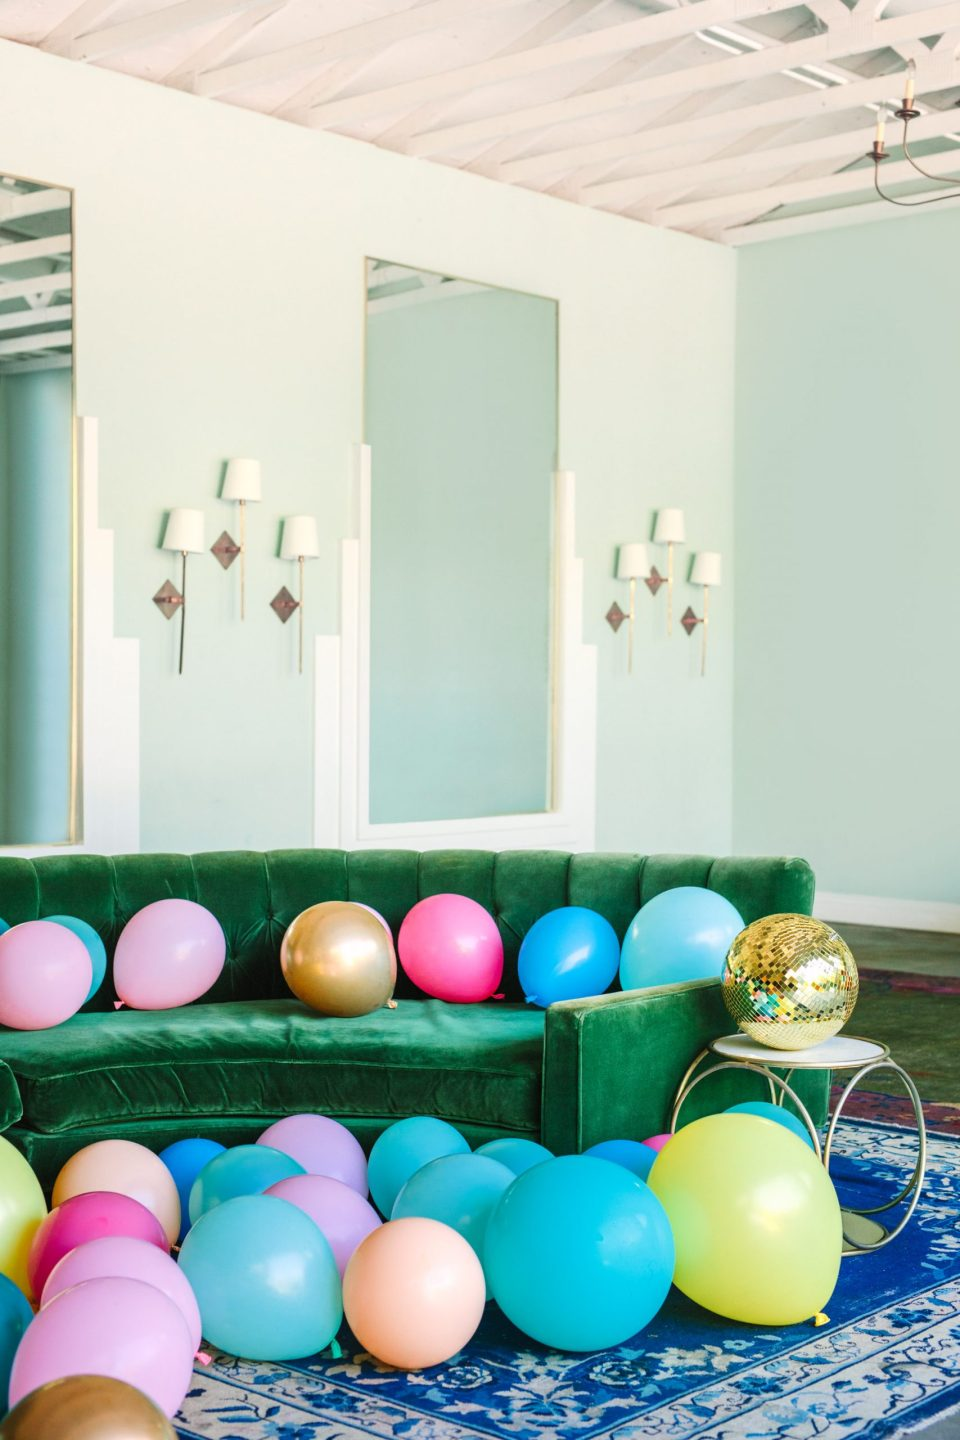 Balloons at The Fig House - www.marycostaweddings.com